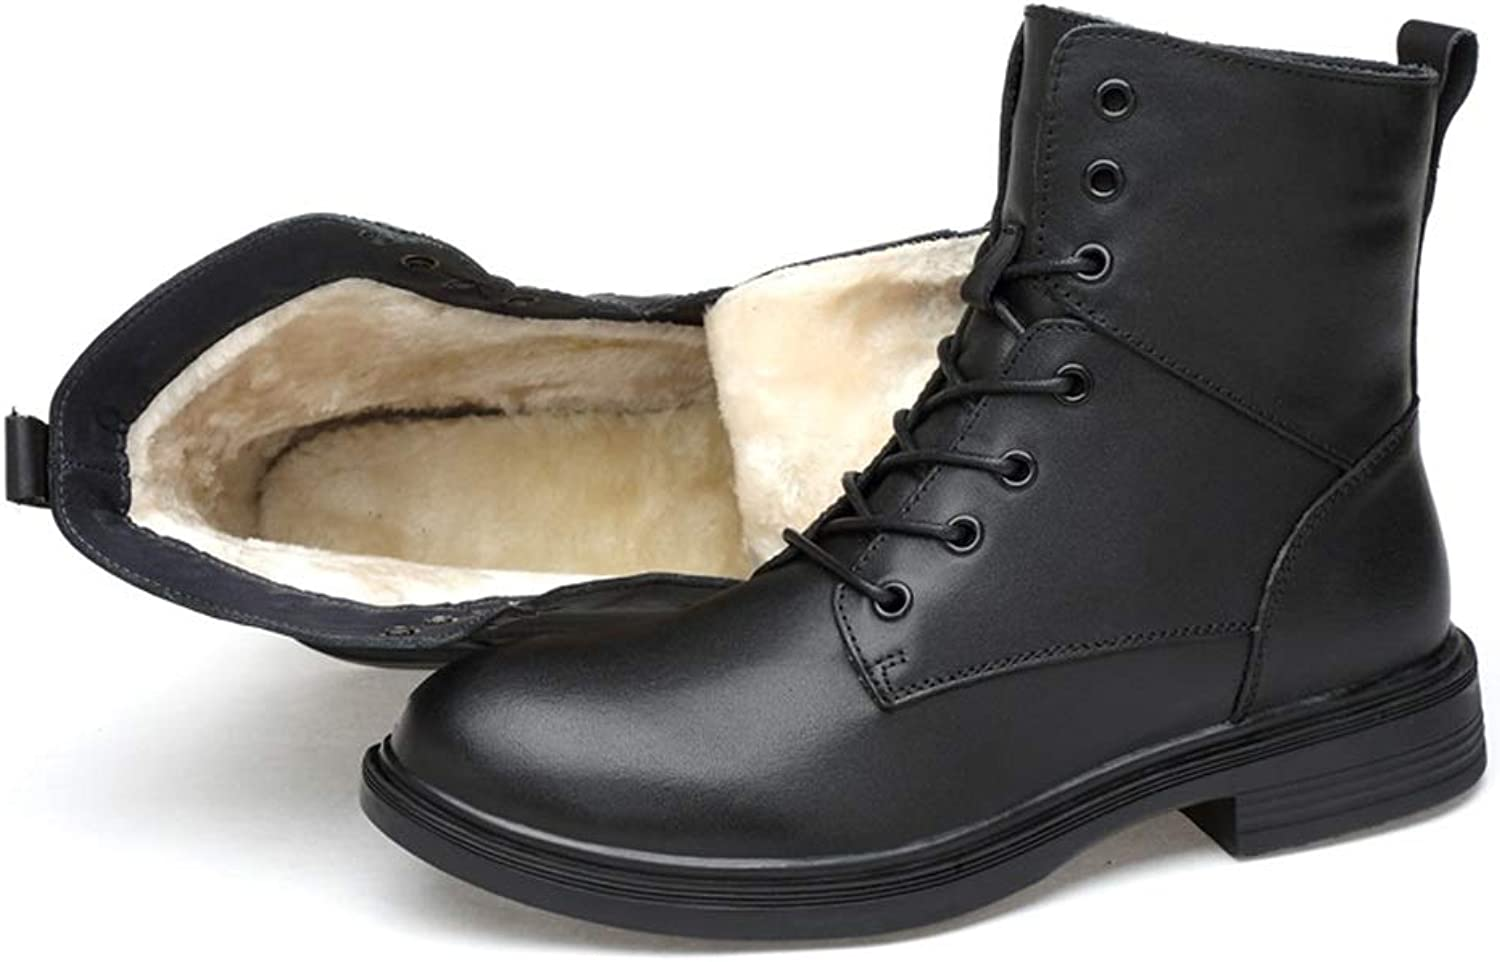 Men's Mid-Calf Boots Casual and Simple Classic High-top Anti-Skid Waterproof Martin Biker Boots (Warm Velvet Optional) for Men